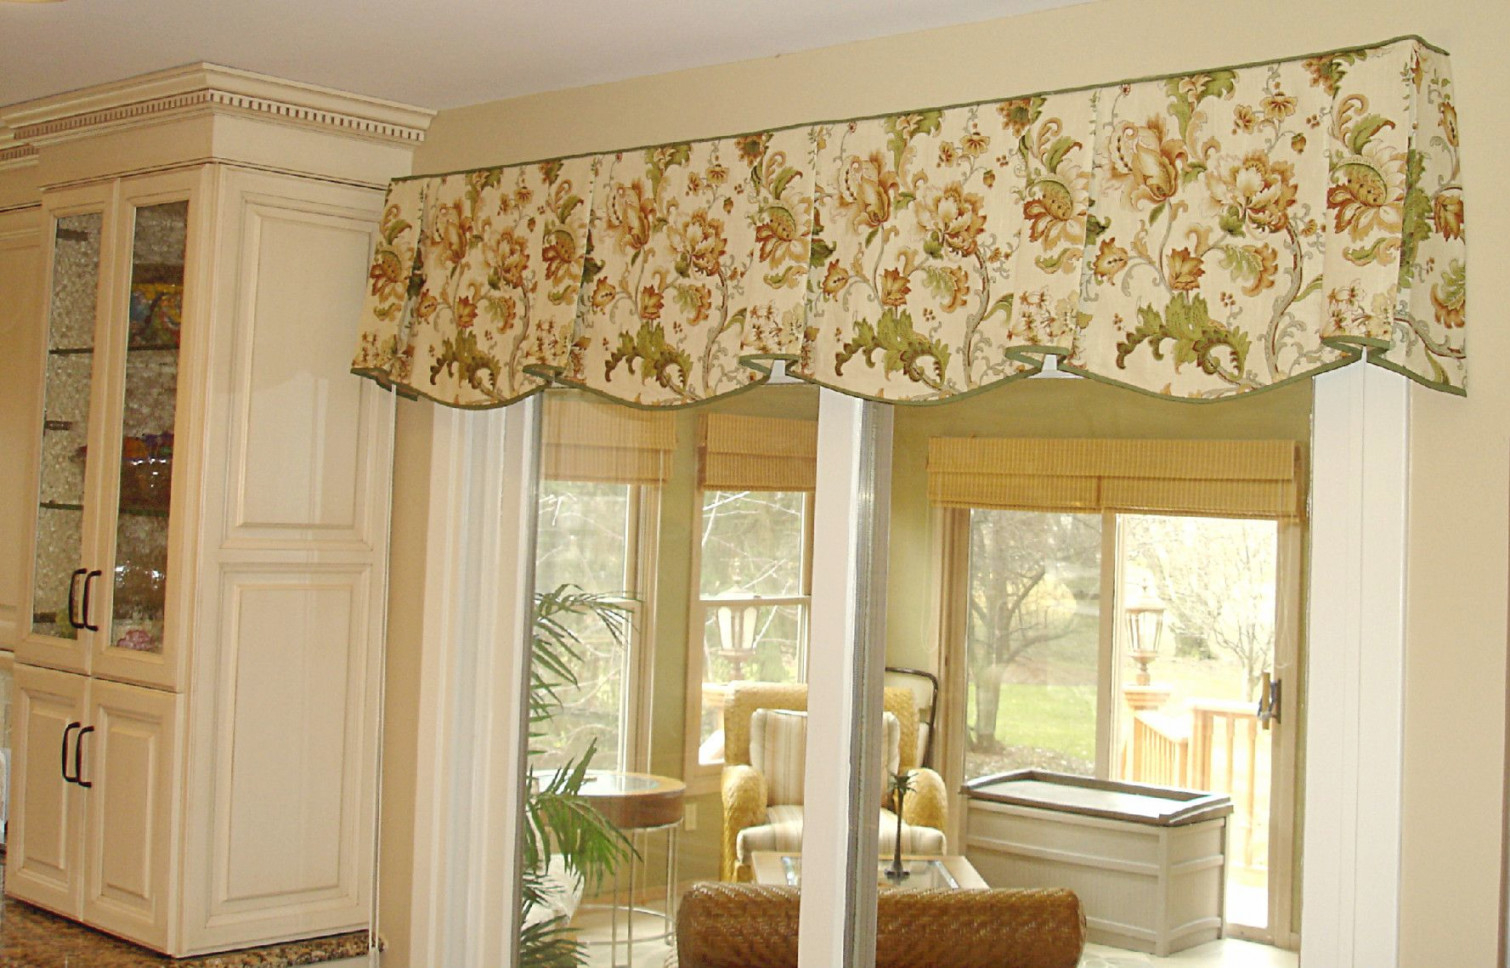 Living Room Valance Ideas - Valance Ideas That Match Your throughout Valance Curtains For Living Room